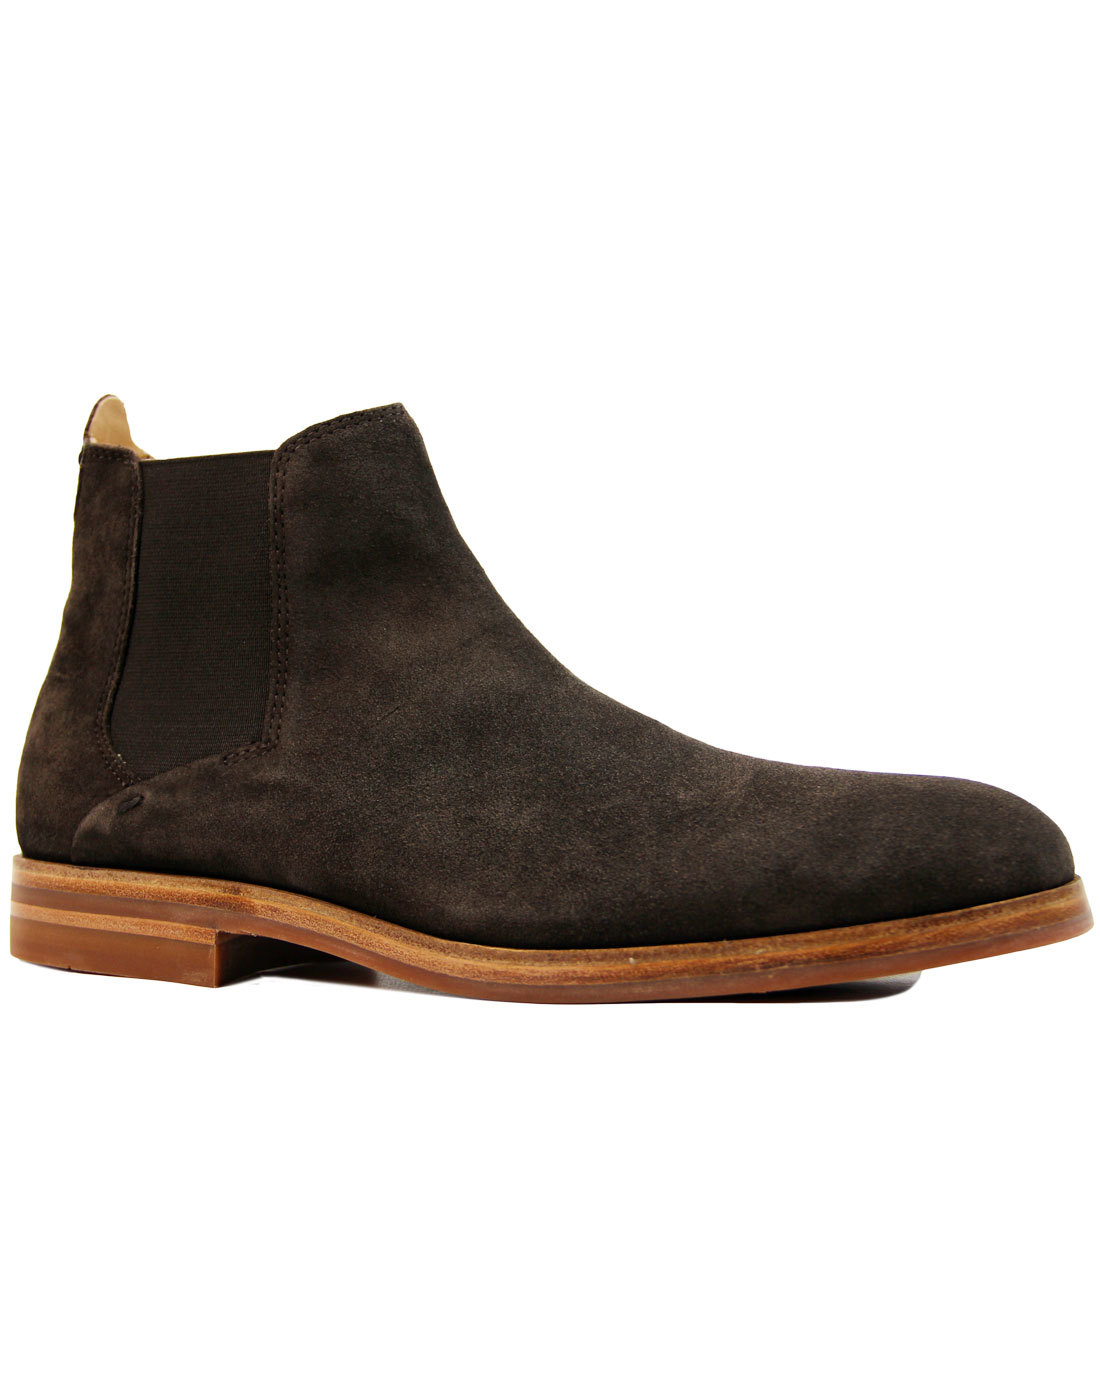 Tonte Suede H by HUDSON Mod Chelsea Boots BROWN